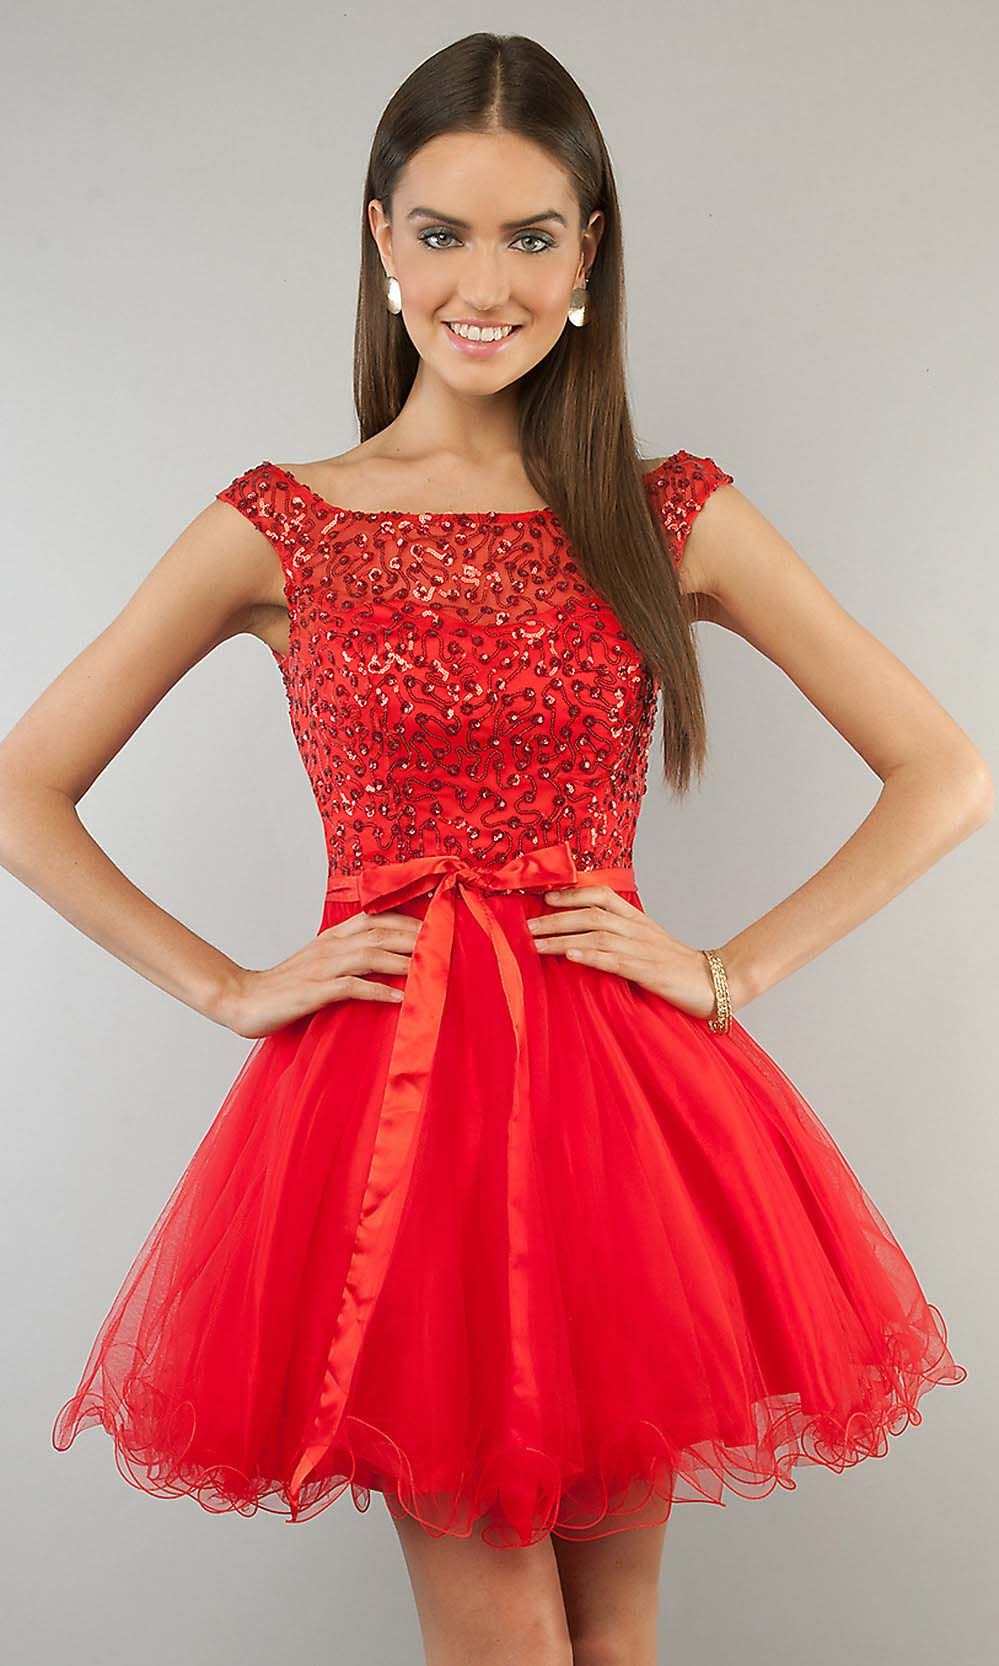 short red bridesmaid dresses quiz | Top 50 Short-Red Bridesmaid ...